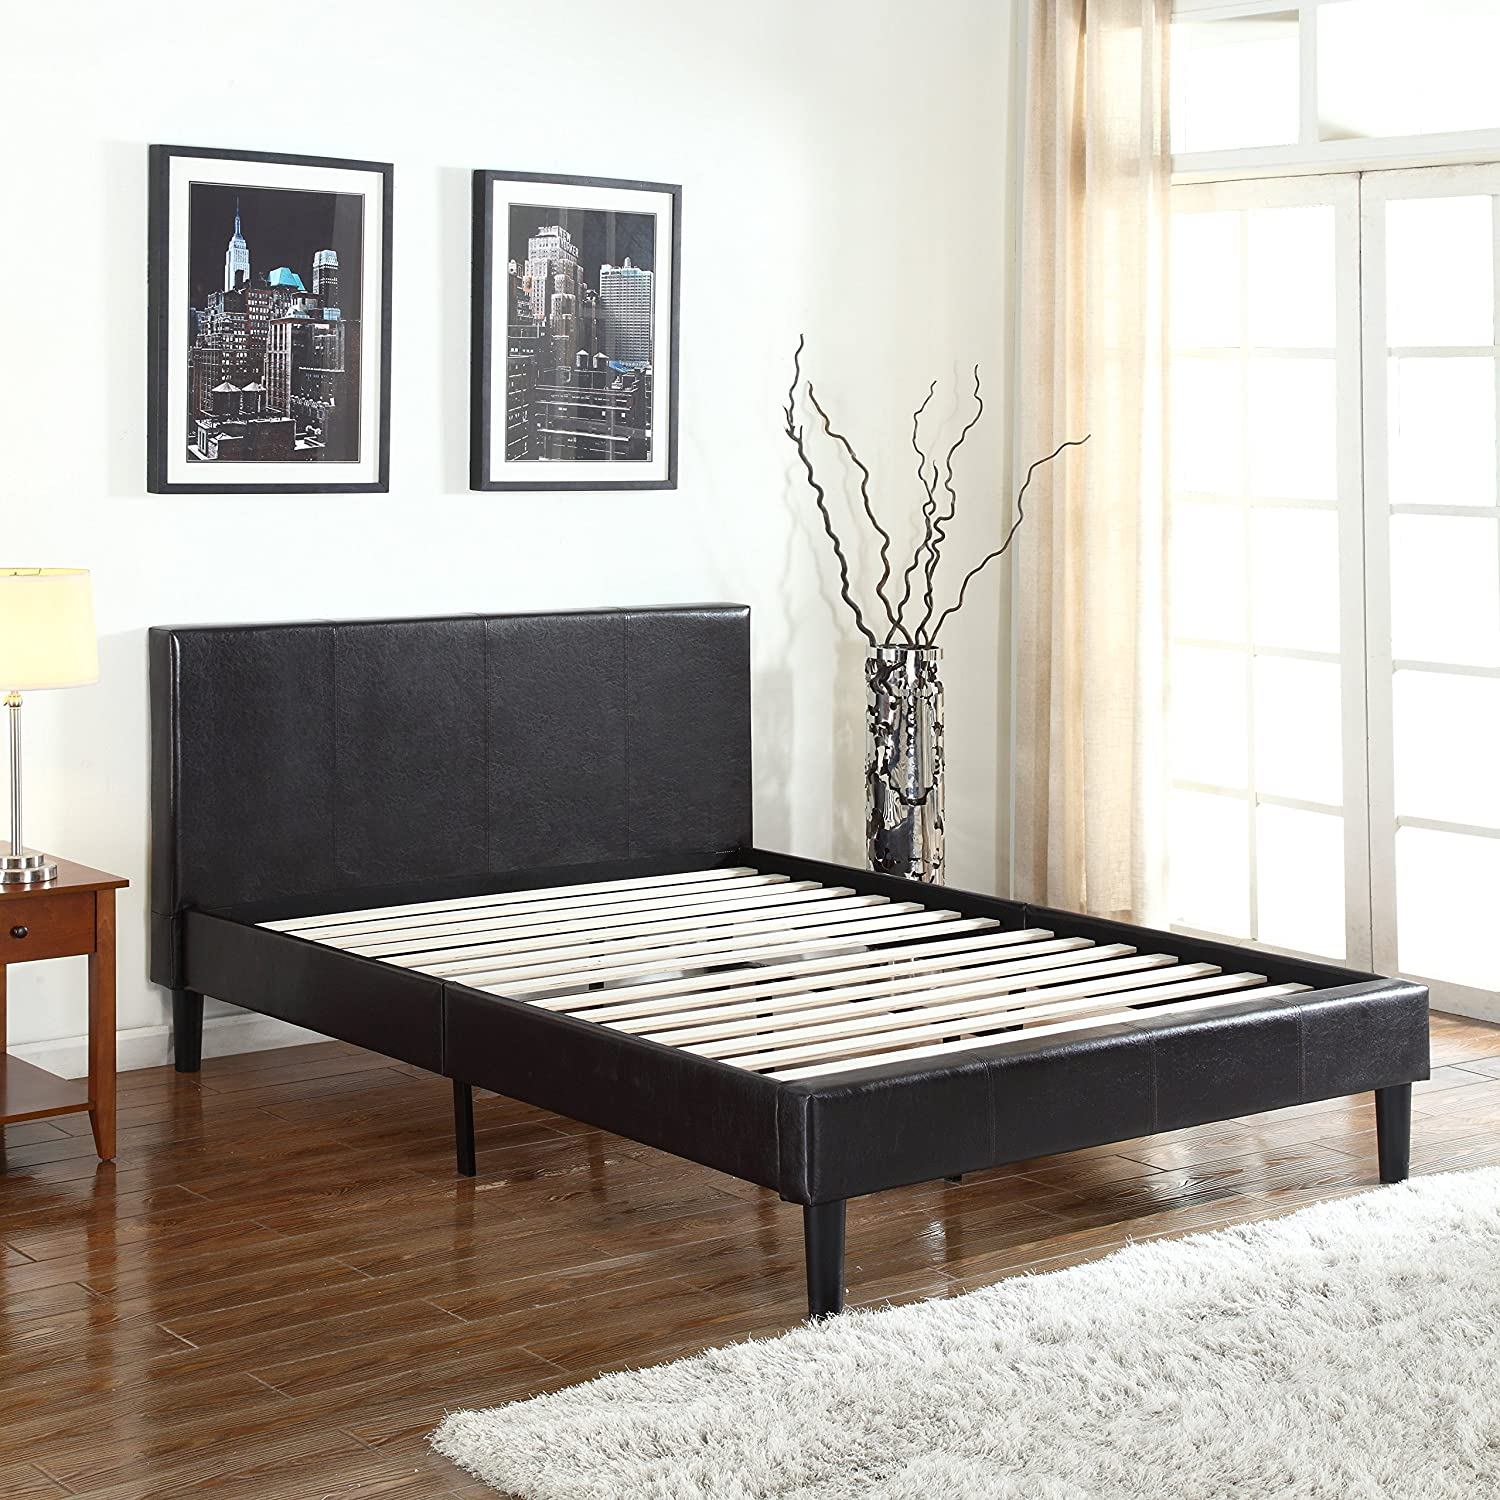 Amazon.com: Deluxe Espresso Brown Bonded Leather Platform Bed With Wooden  Slats (Twin): Kitchen U0026 Dining